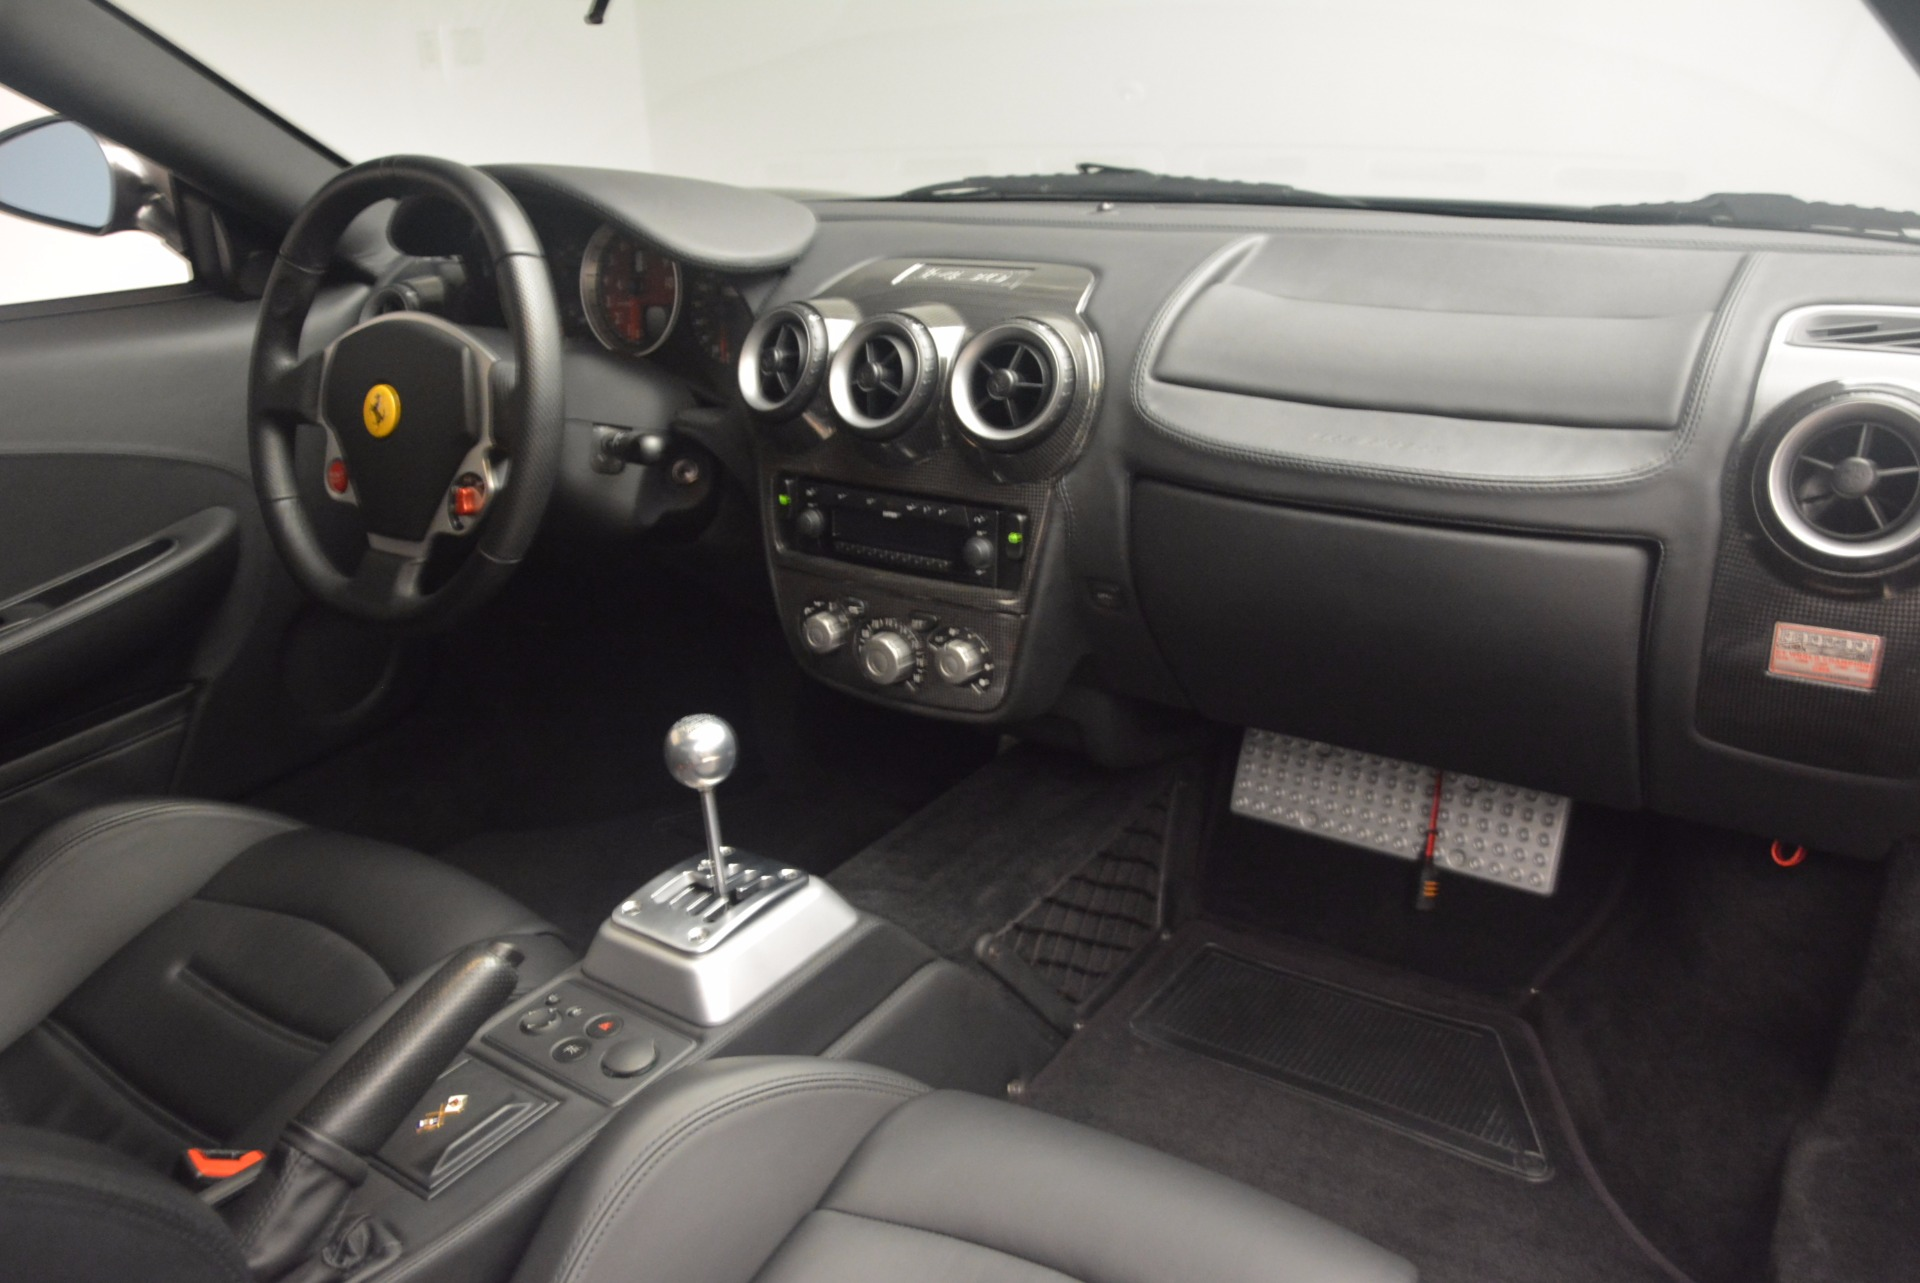 Used 2005 Ferrari F430 6-Speed Manual For Sale In Greenwich, CT 1286_p17